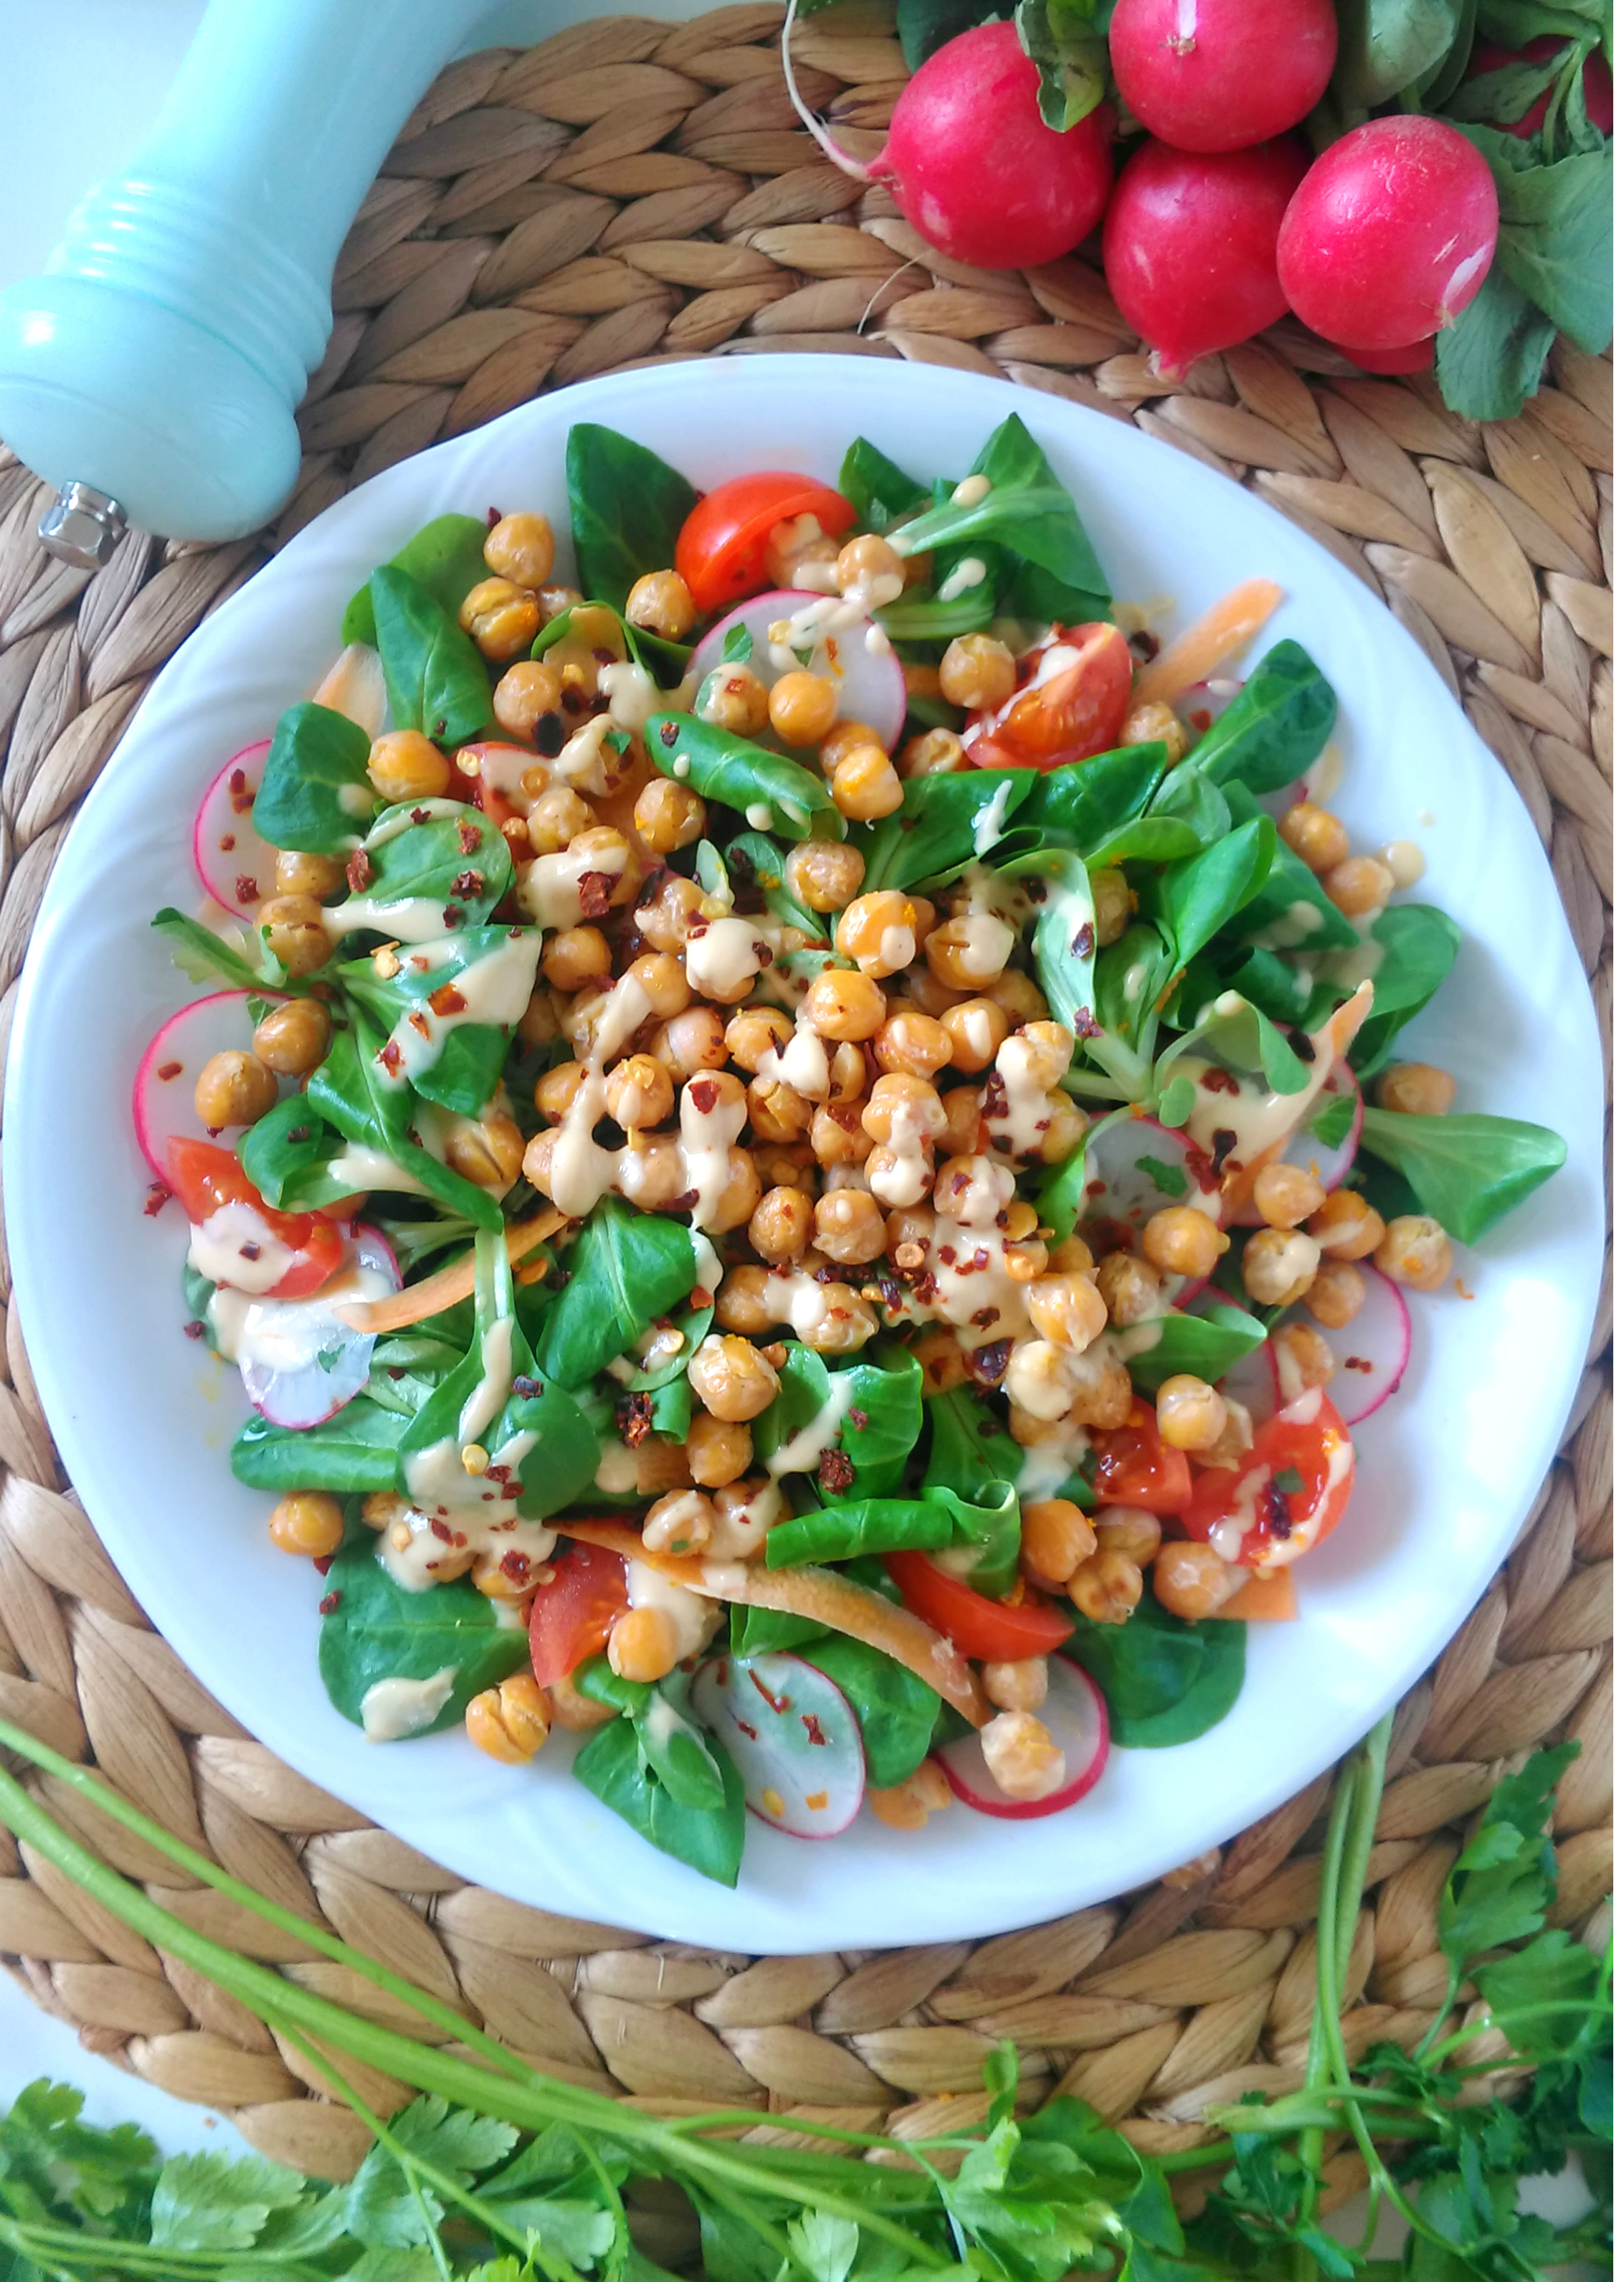 Baby_Spinach_and_Red Radish_Salad_with_Roasted Chickpeas_and_Tahini_Dressing_recipe_DIYBITES_2